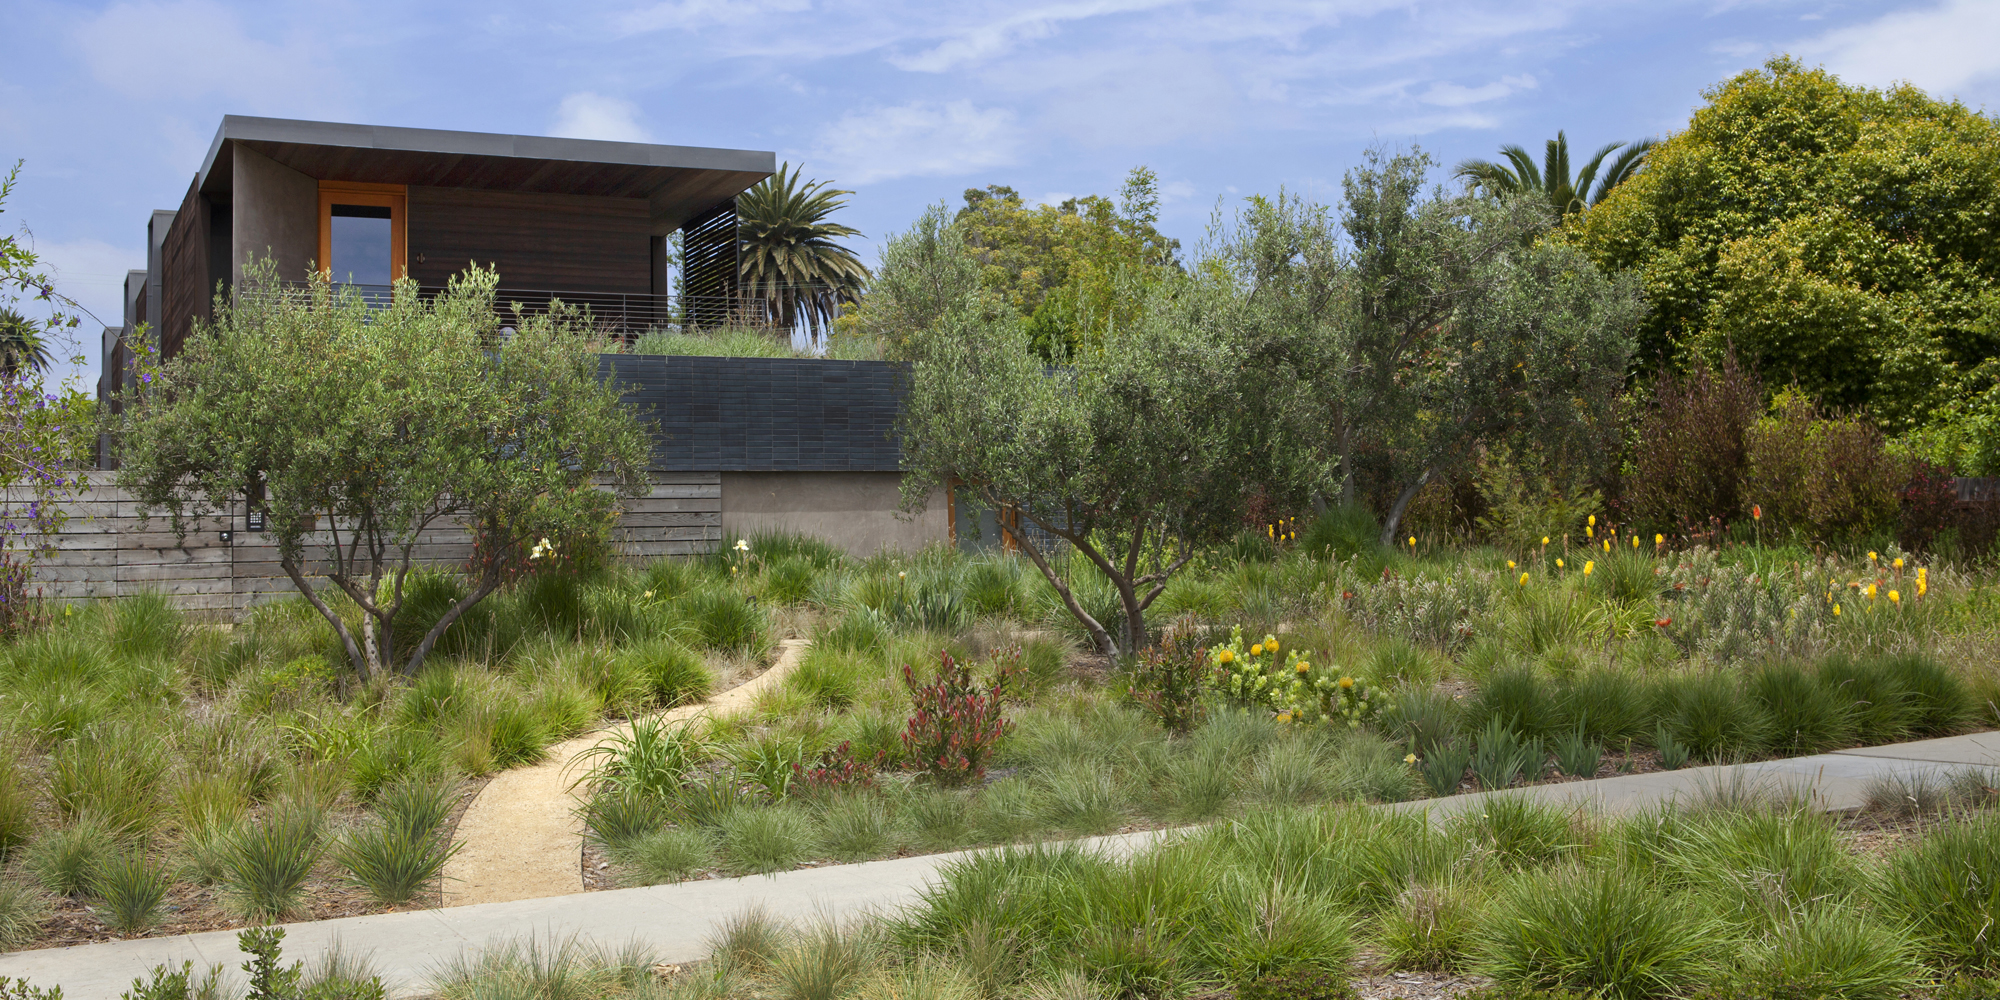 ... Stephen_Billings_Landscape_Architecture_Santa_Monica_5;  Stephen_Billings_Landscape_Architecture_Santa_Monica_4; Dillon Sbla  Losangeles ...